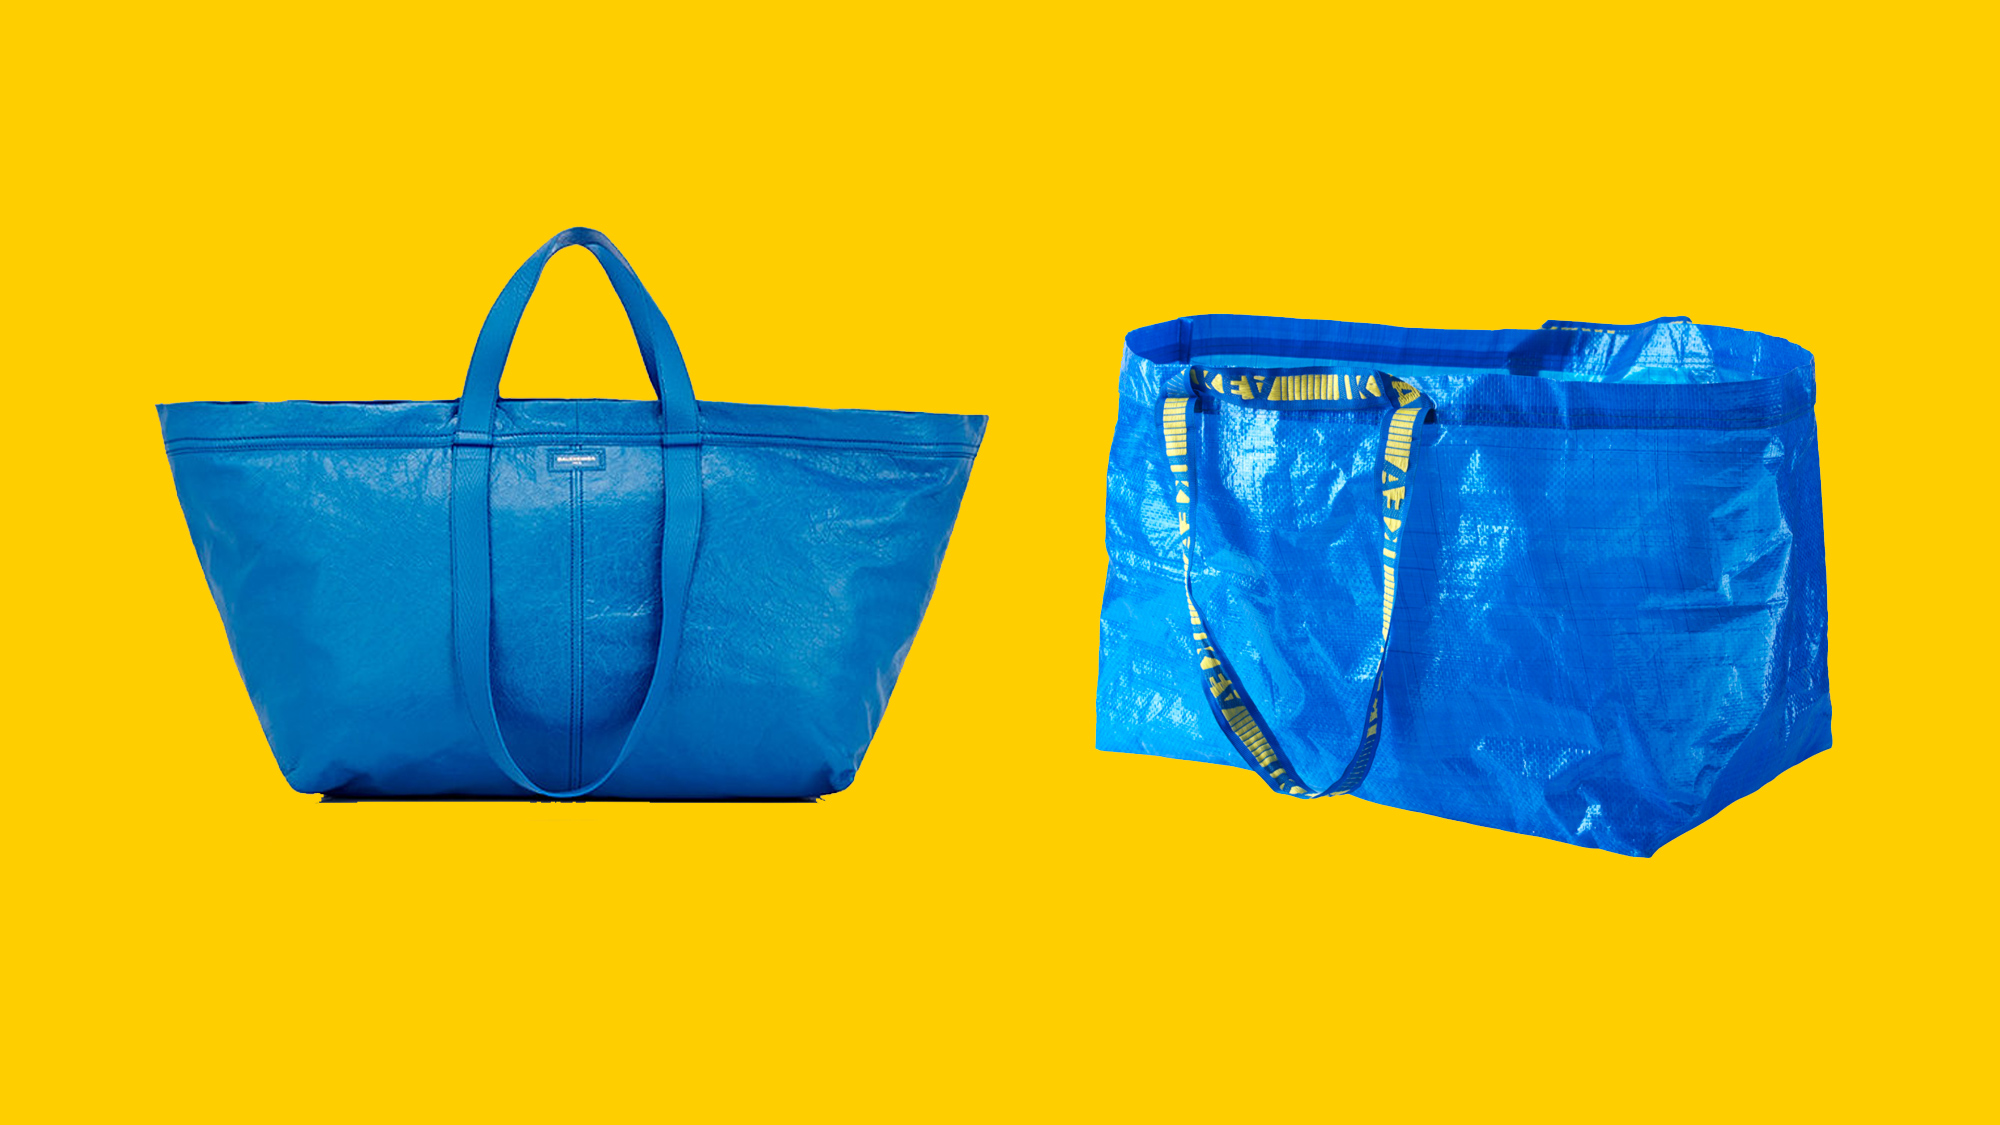 The Designer Handbag You Probably Own Without Realising It